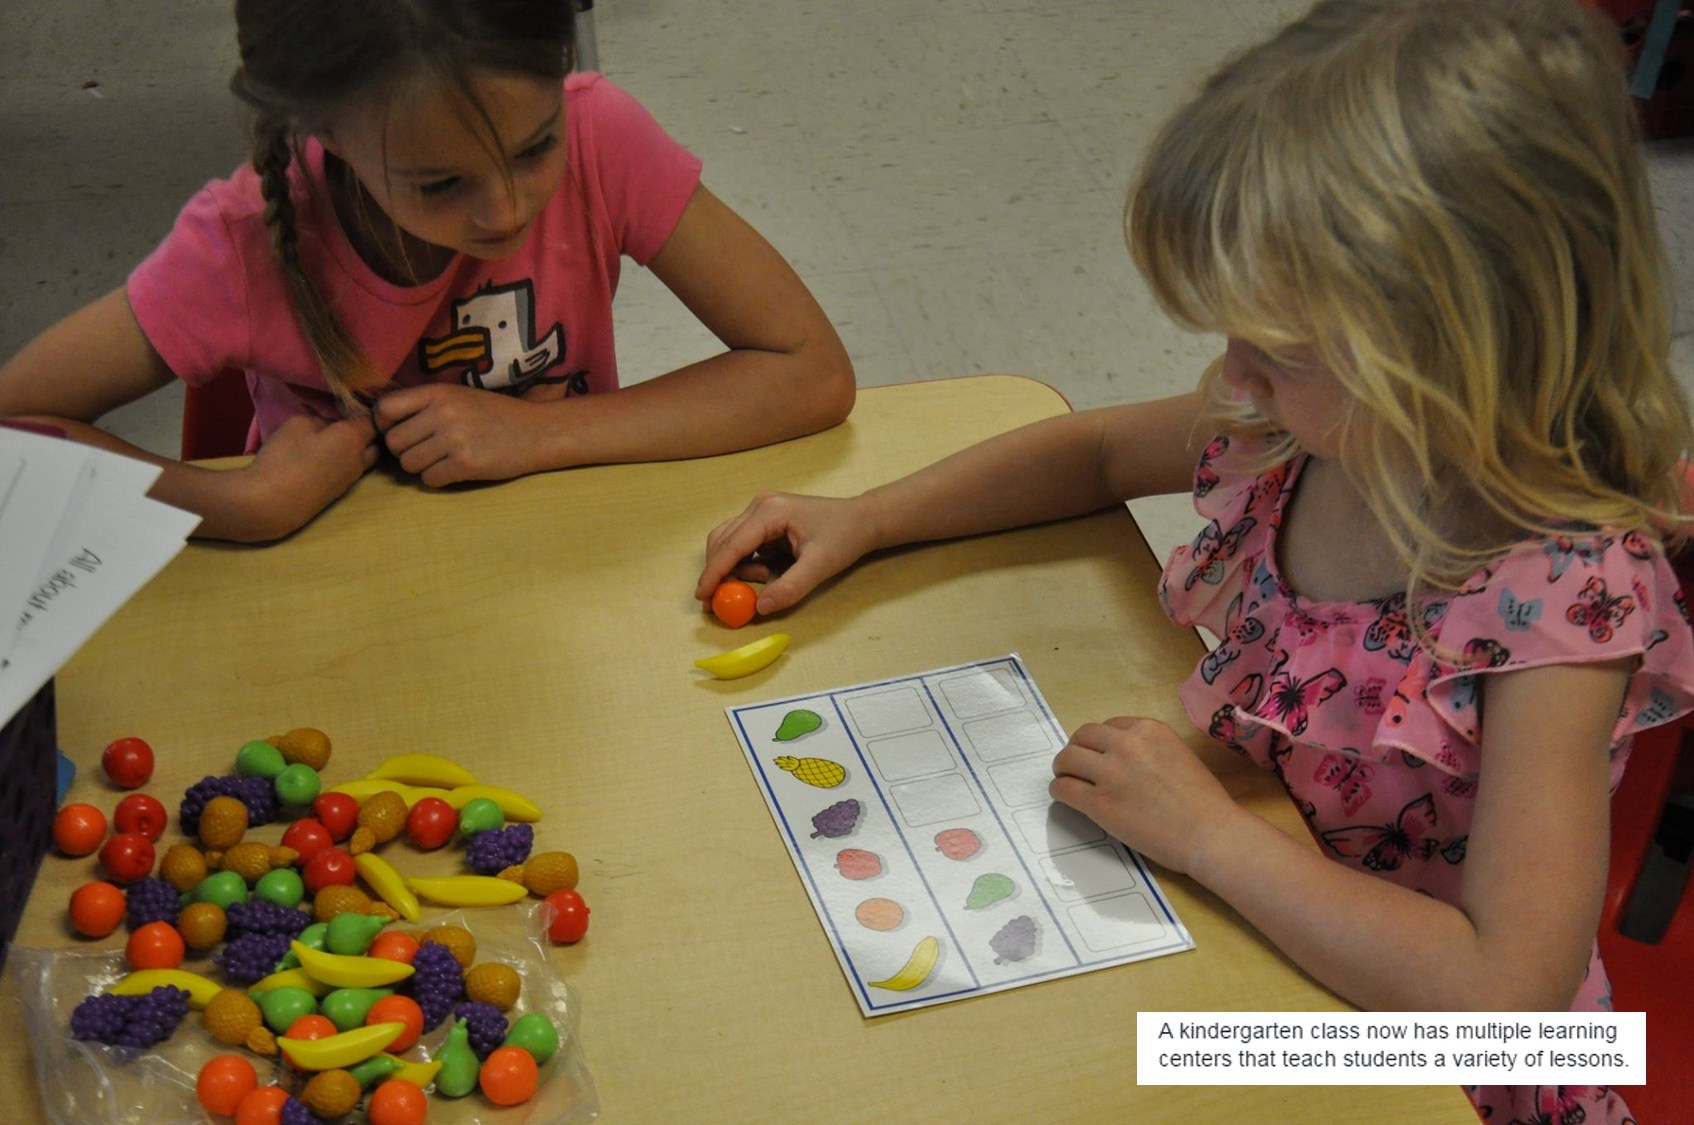 Colorful manipulatives